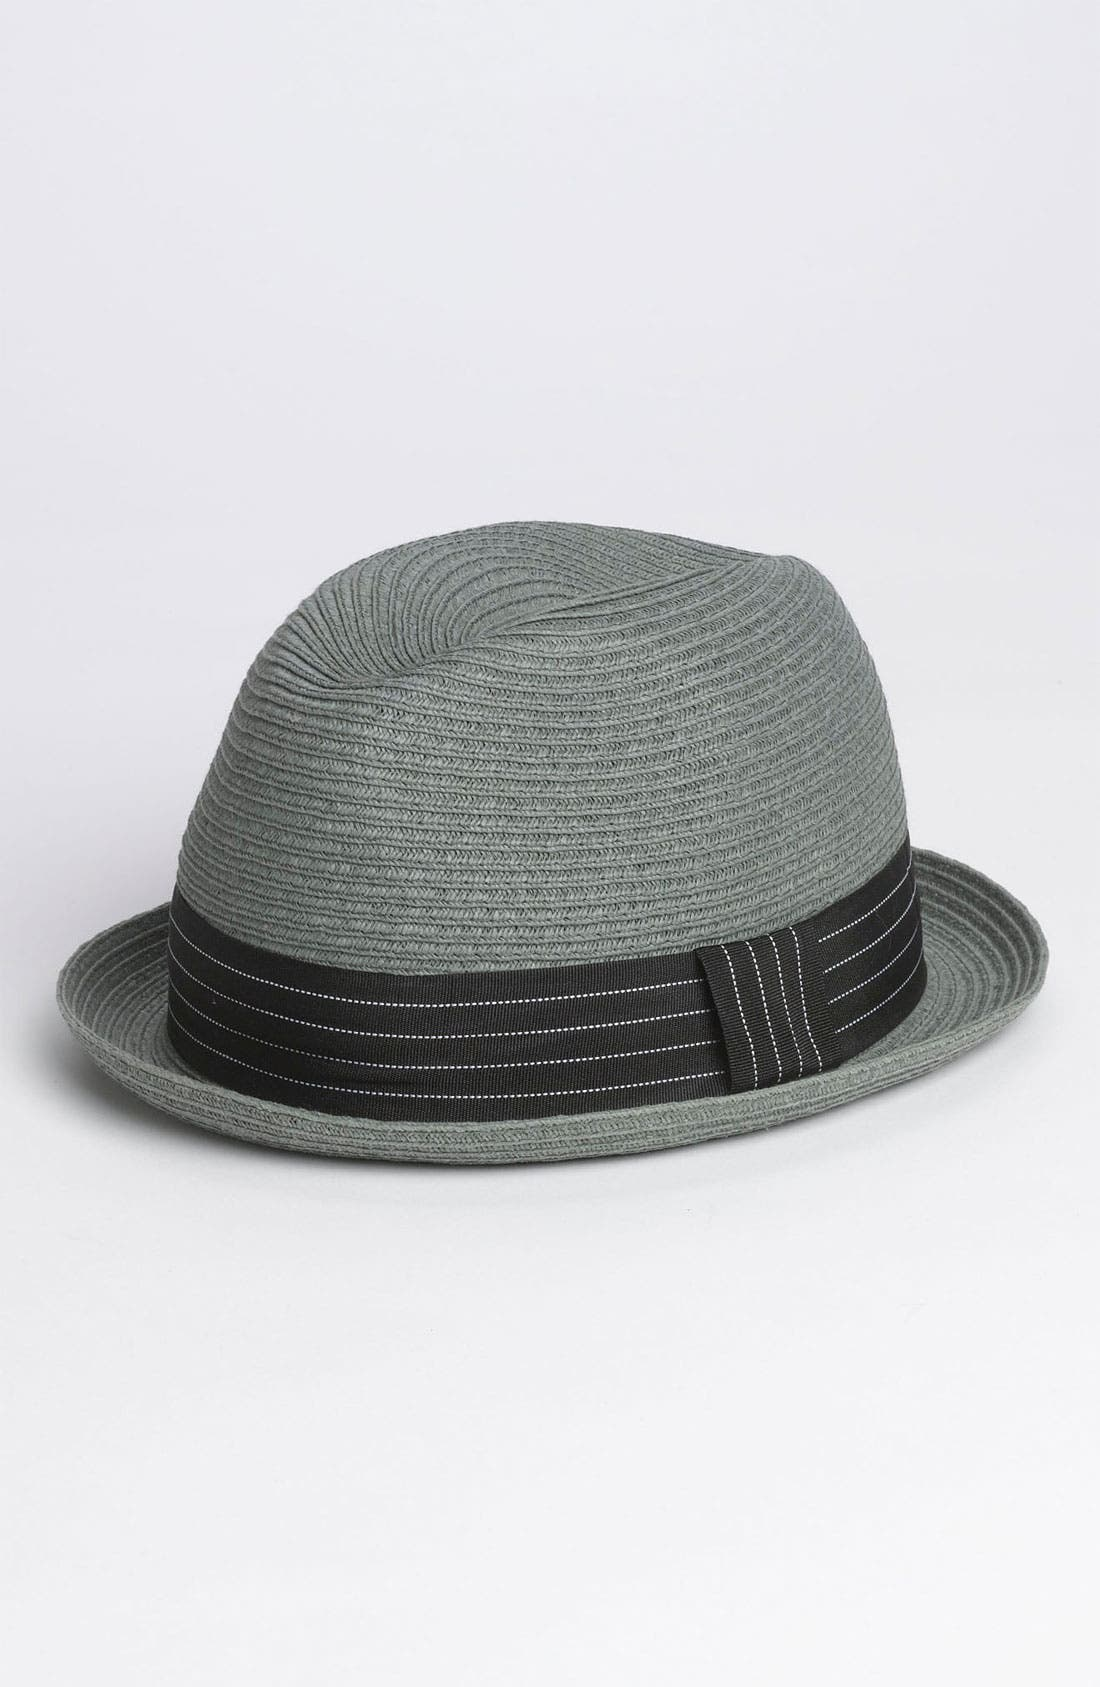 Alternate Image 1 Selected - Glory Hats by Goorin 'Roosevelt' Fedora